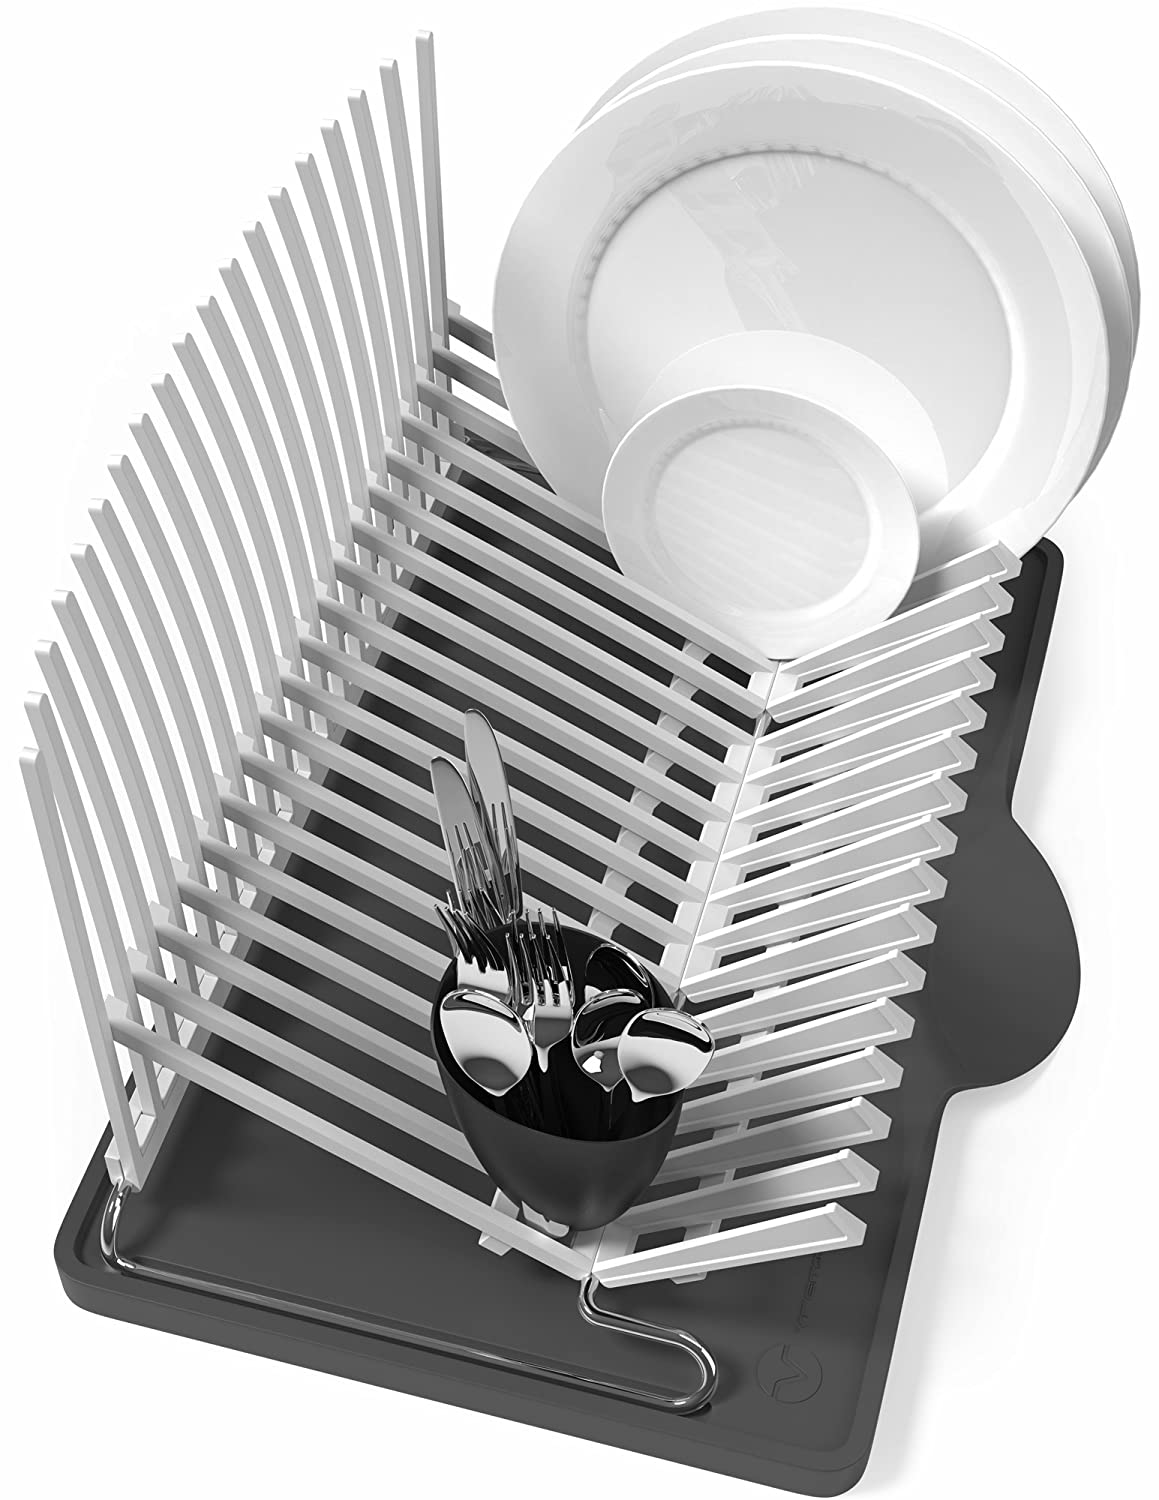 Amazon.com: Vremi Dish Drying Rack - Collapsible Dish Rack and ...